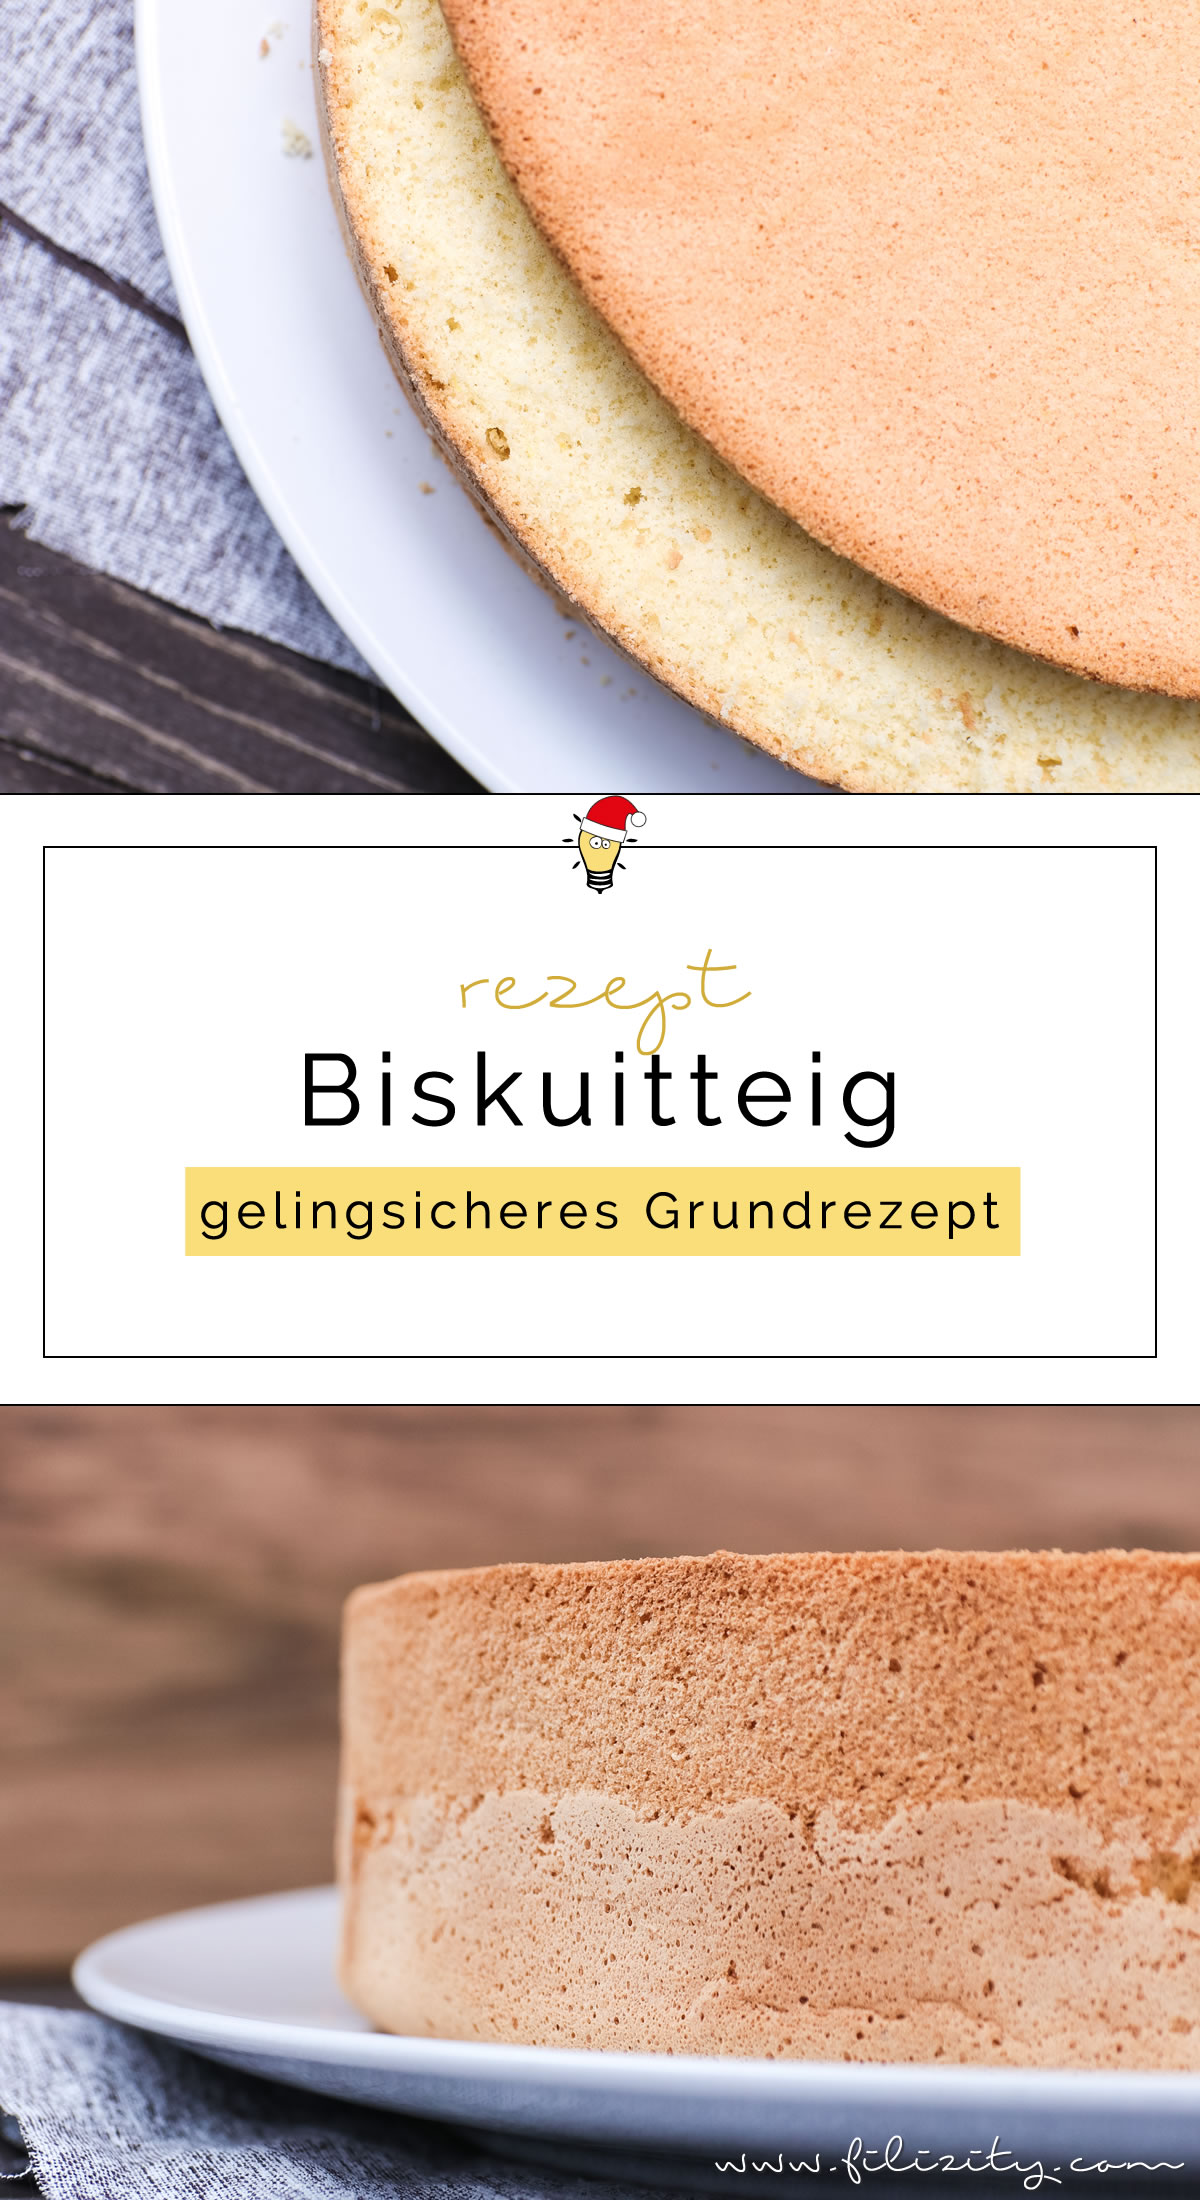 gelingsicheres biskuitteig rezept f r torten desserts food blog aus dem rheinland. Black Bedroom Furniture Sets. Home Design Ideas